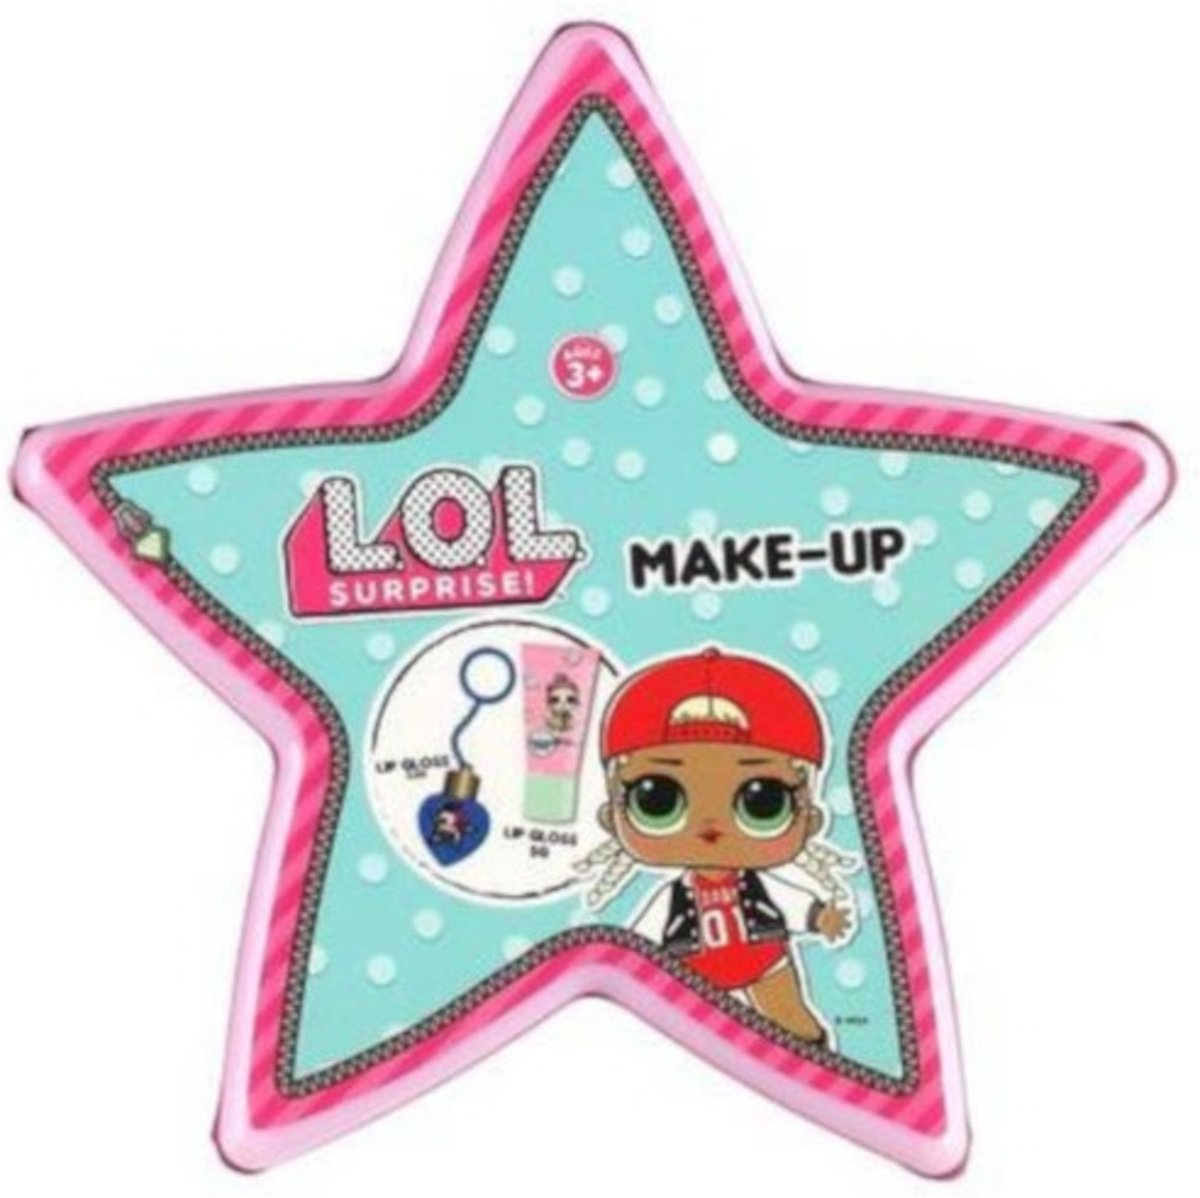 Toi-toys Make-upset L.o.l. Surprise Medium 10 Cm Roze (f)